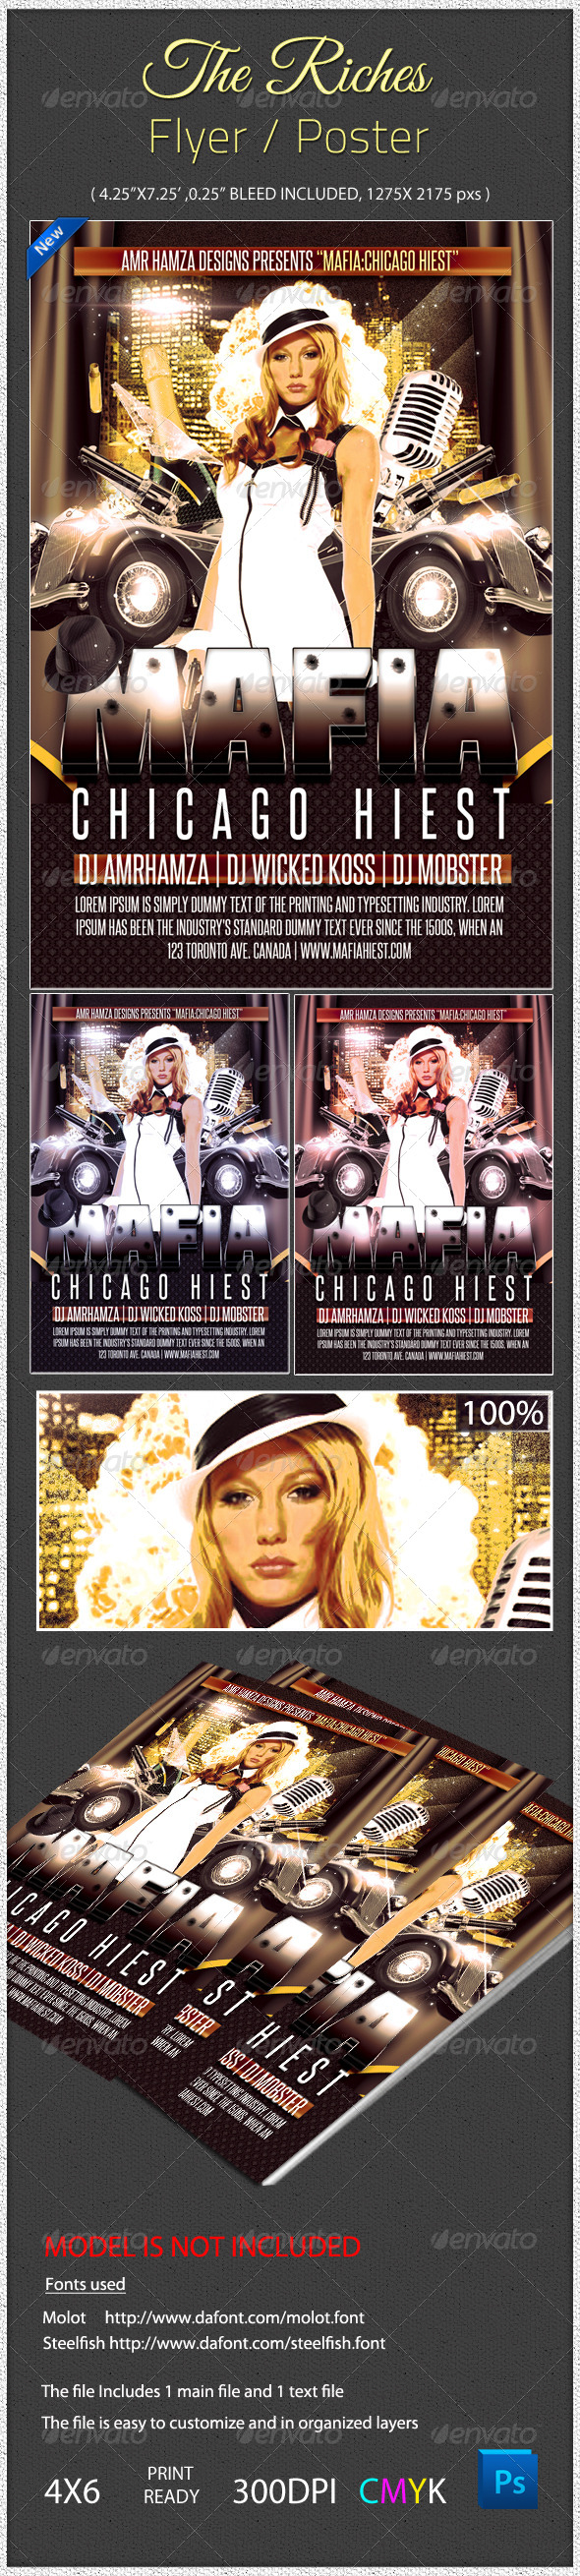 Chicago Hiest Gangster Theme Flyer